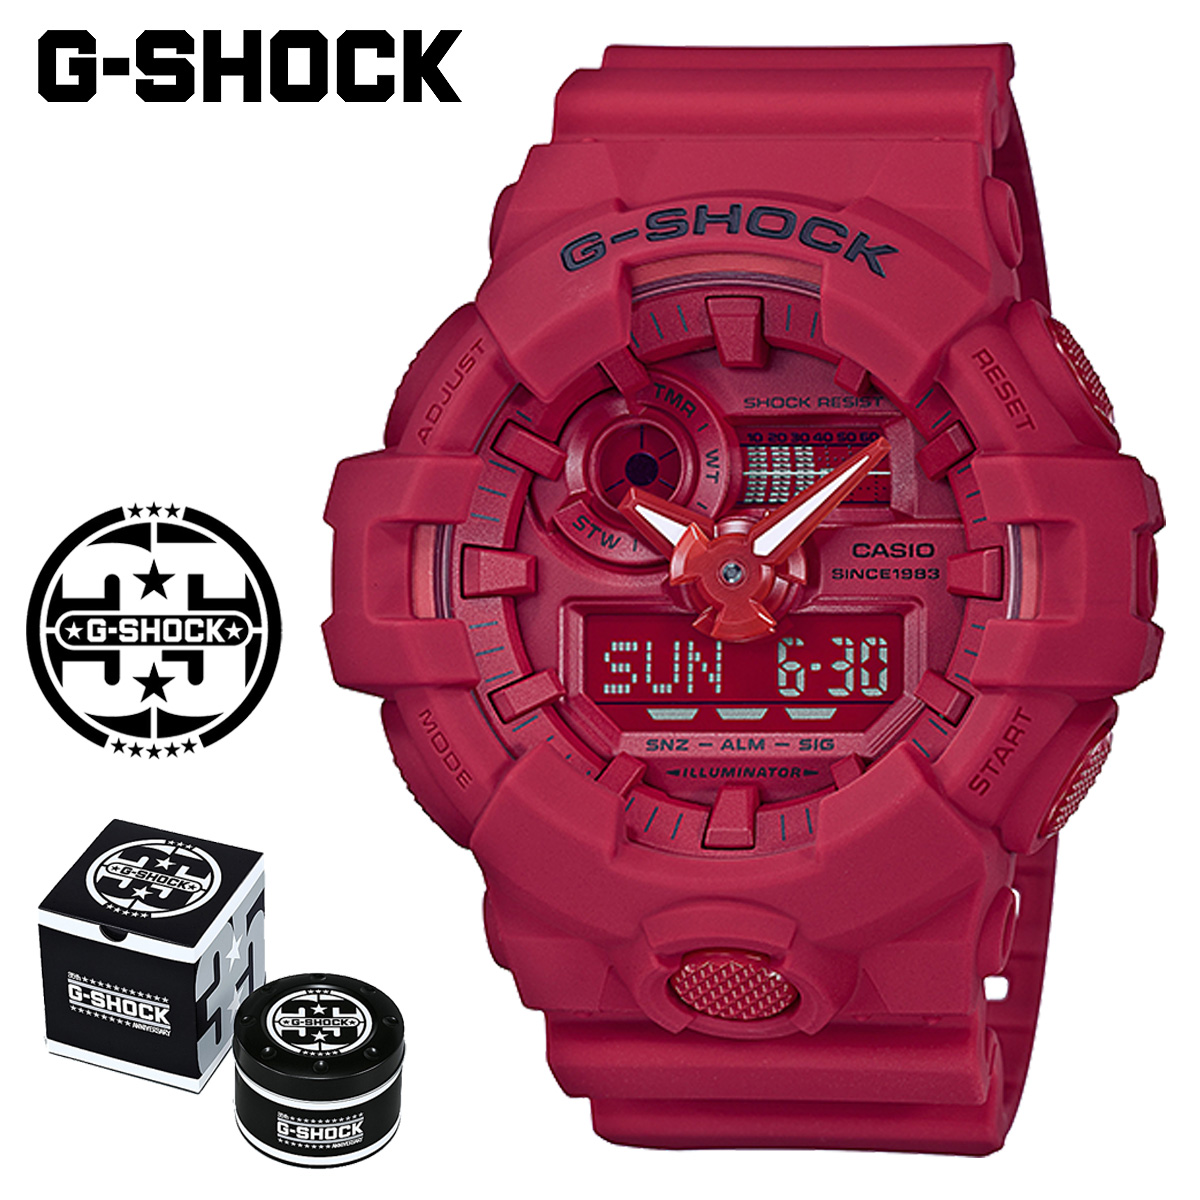 G Shock G Shock G Shock Red Red Men Gap Dis Of The 35th Anniversary Of Casio Casio G Shock Watch Ga 735c 4ajr Red Out